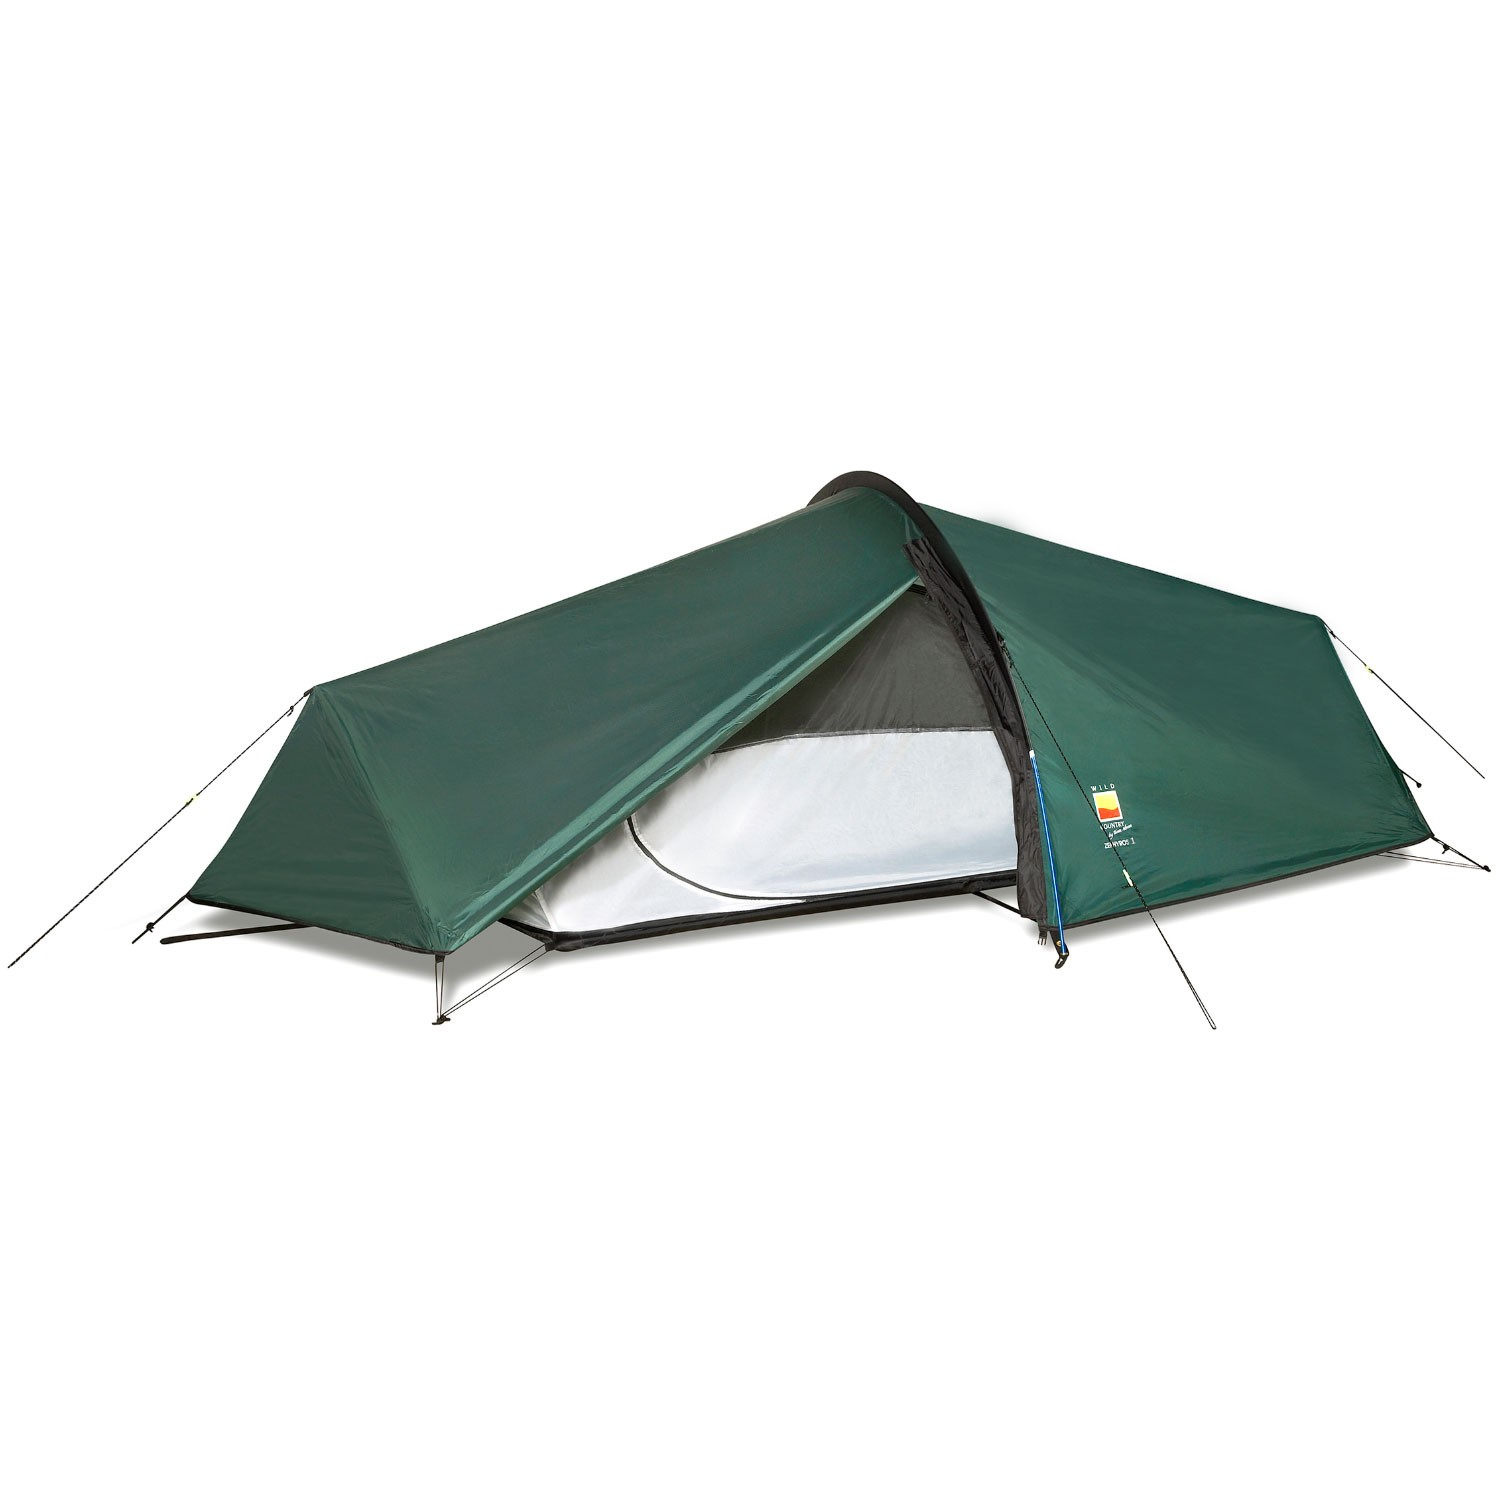 Wild Country Zephyros 1 Backpacking Tent